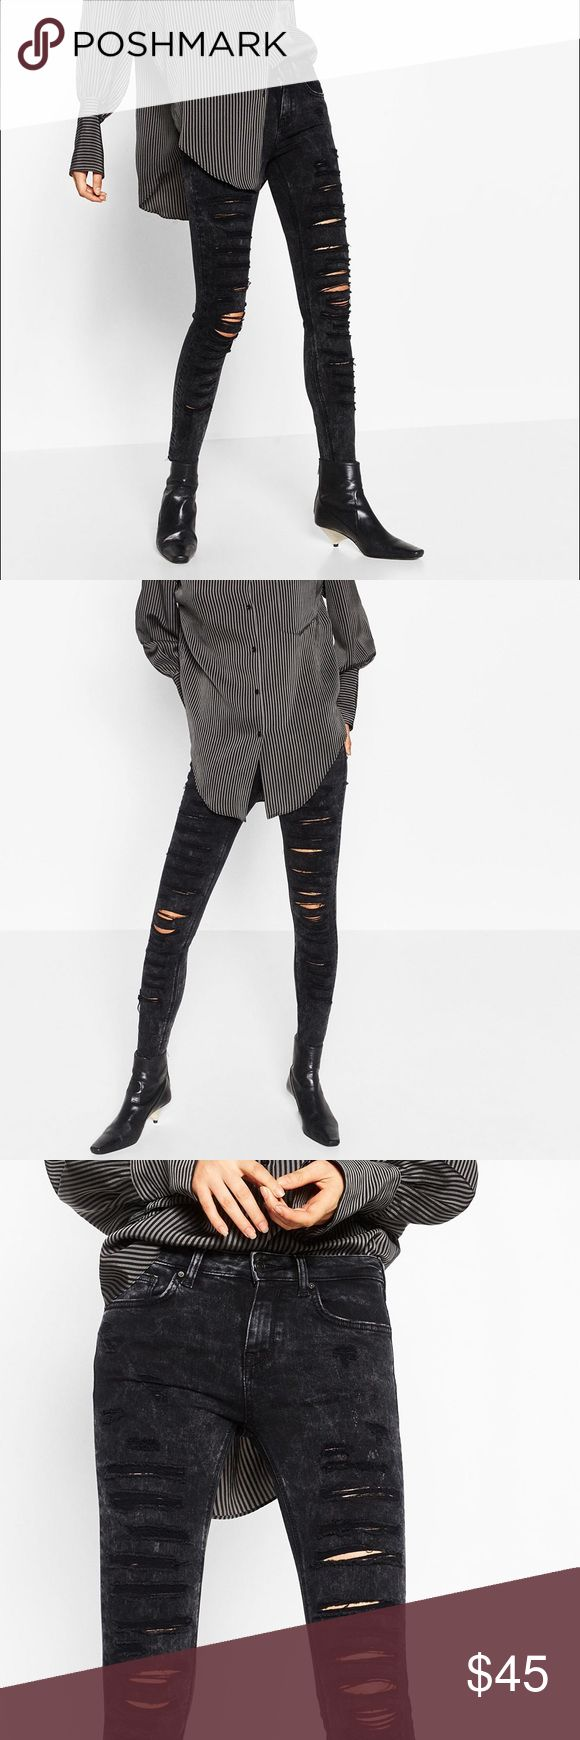 ZARA New w/ Tag 2016 Fall Distressed Sunny Jeans Super gorgeous premium jeans from Zara 2016 fall collection. Super cool style. Size runs small. Suitable for ladies who usually wear size 25. Brand new with original tag on! Zara Jeans Skinny